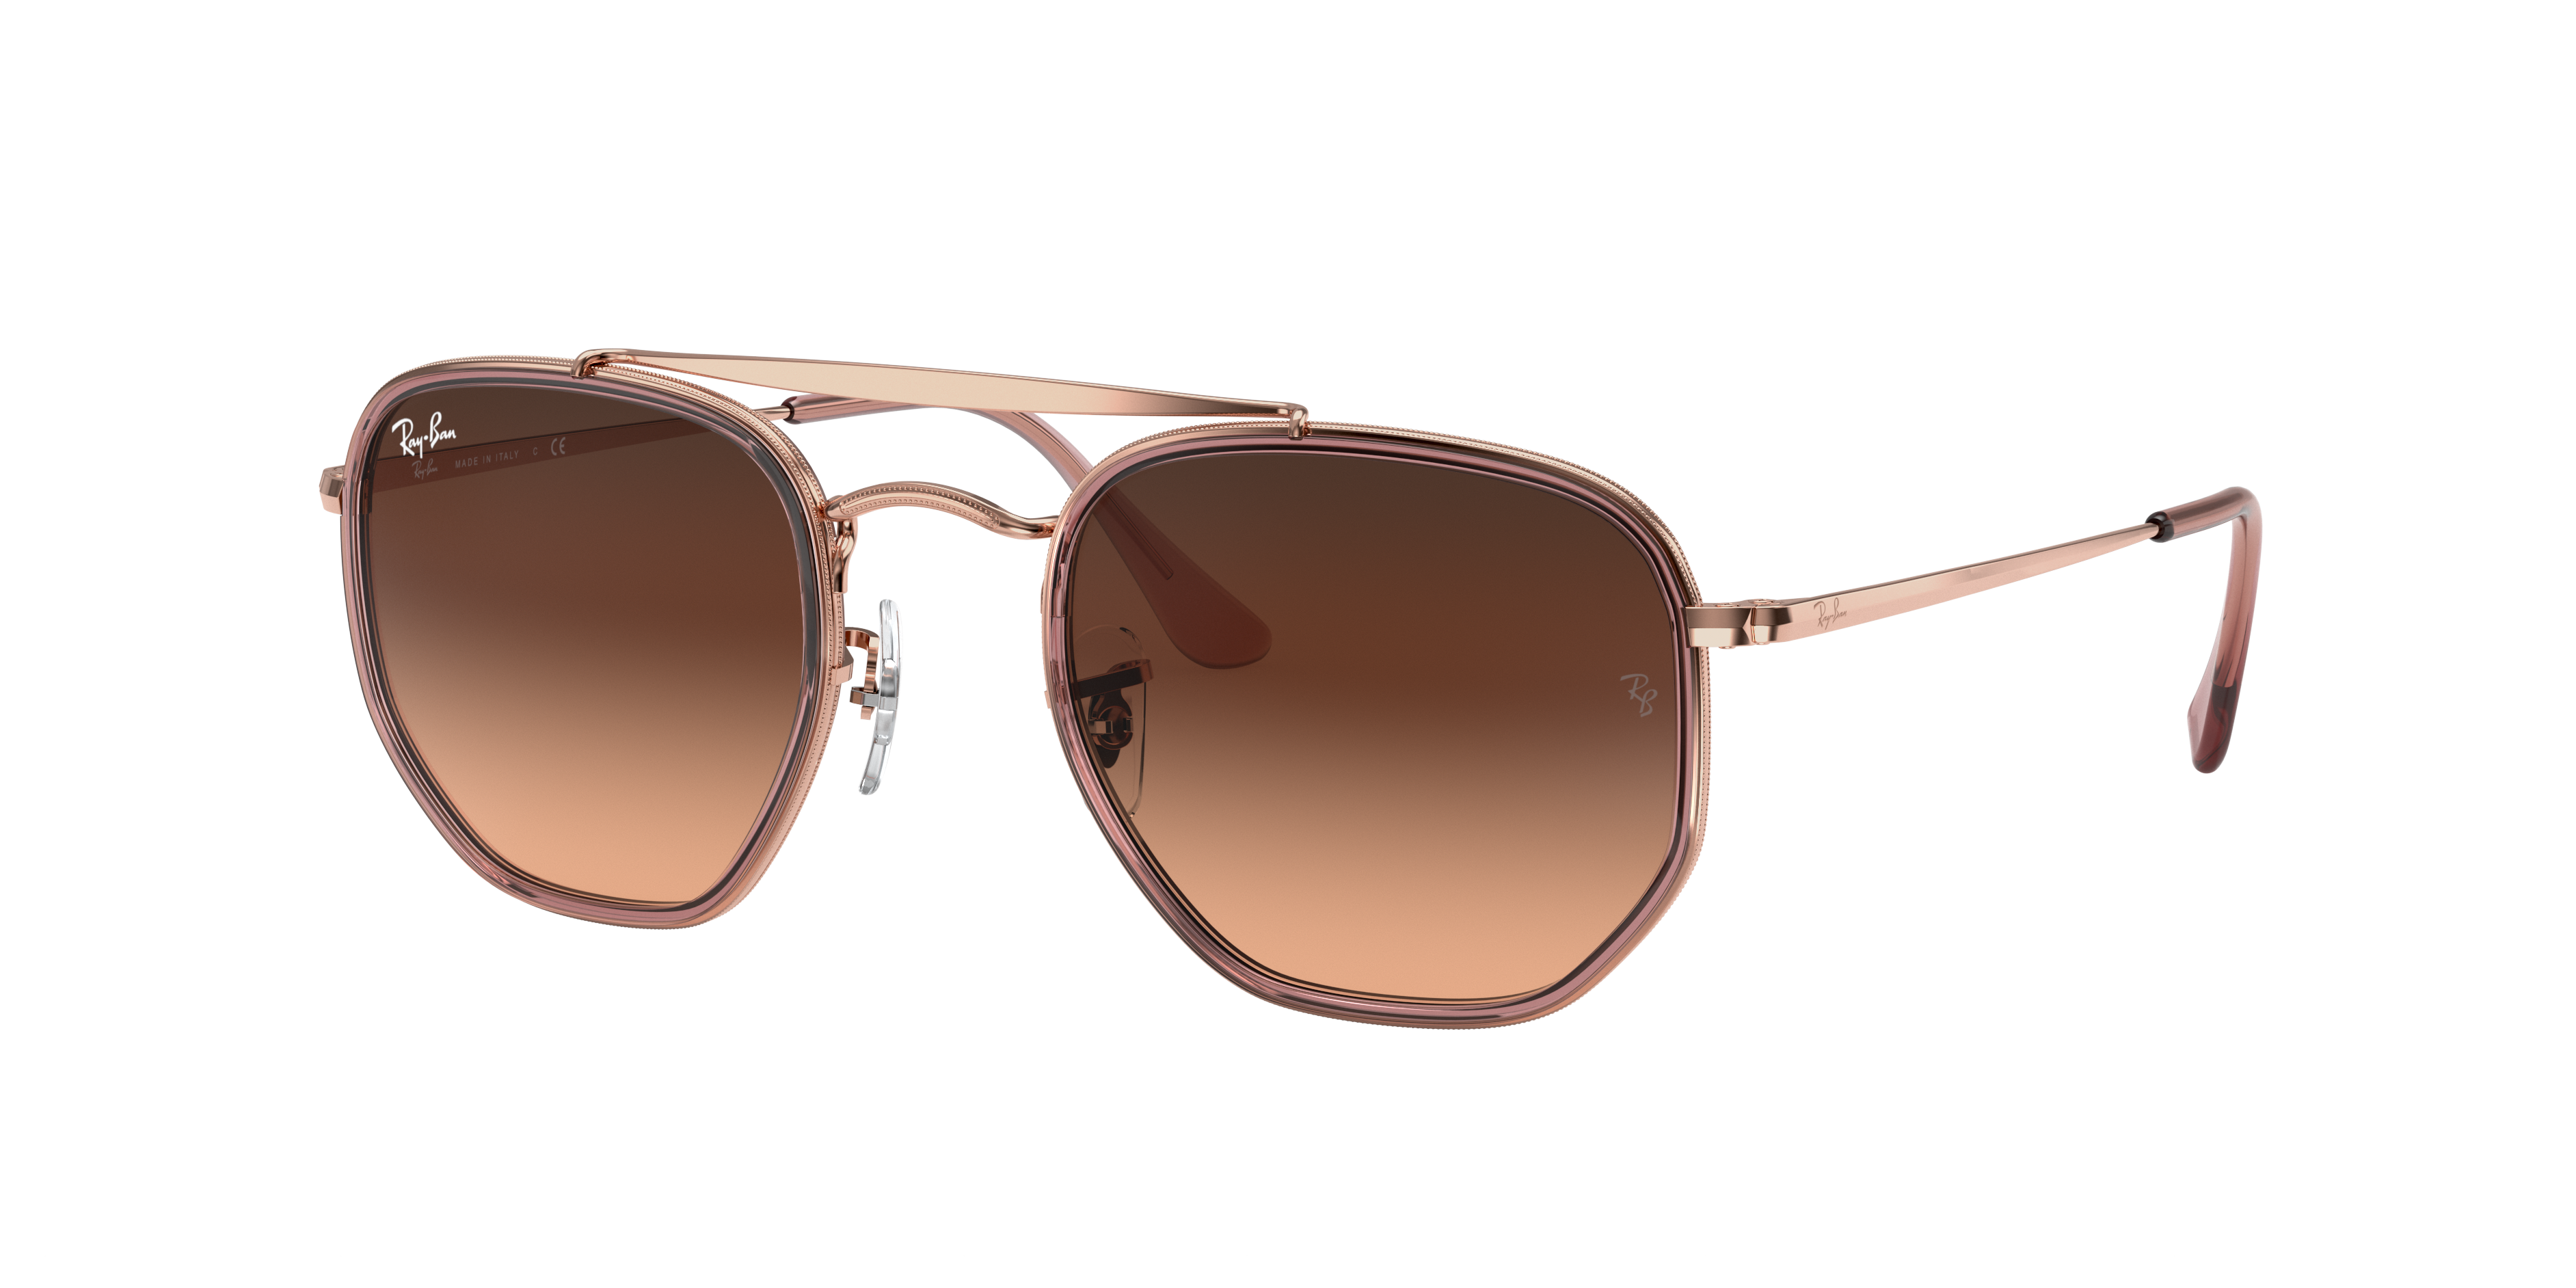 Ray-Ban Marshal II Bronze-Copper, Pink Lenses - RB3648M